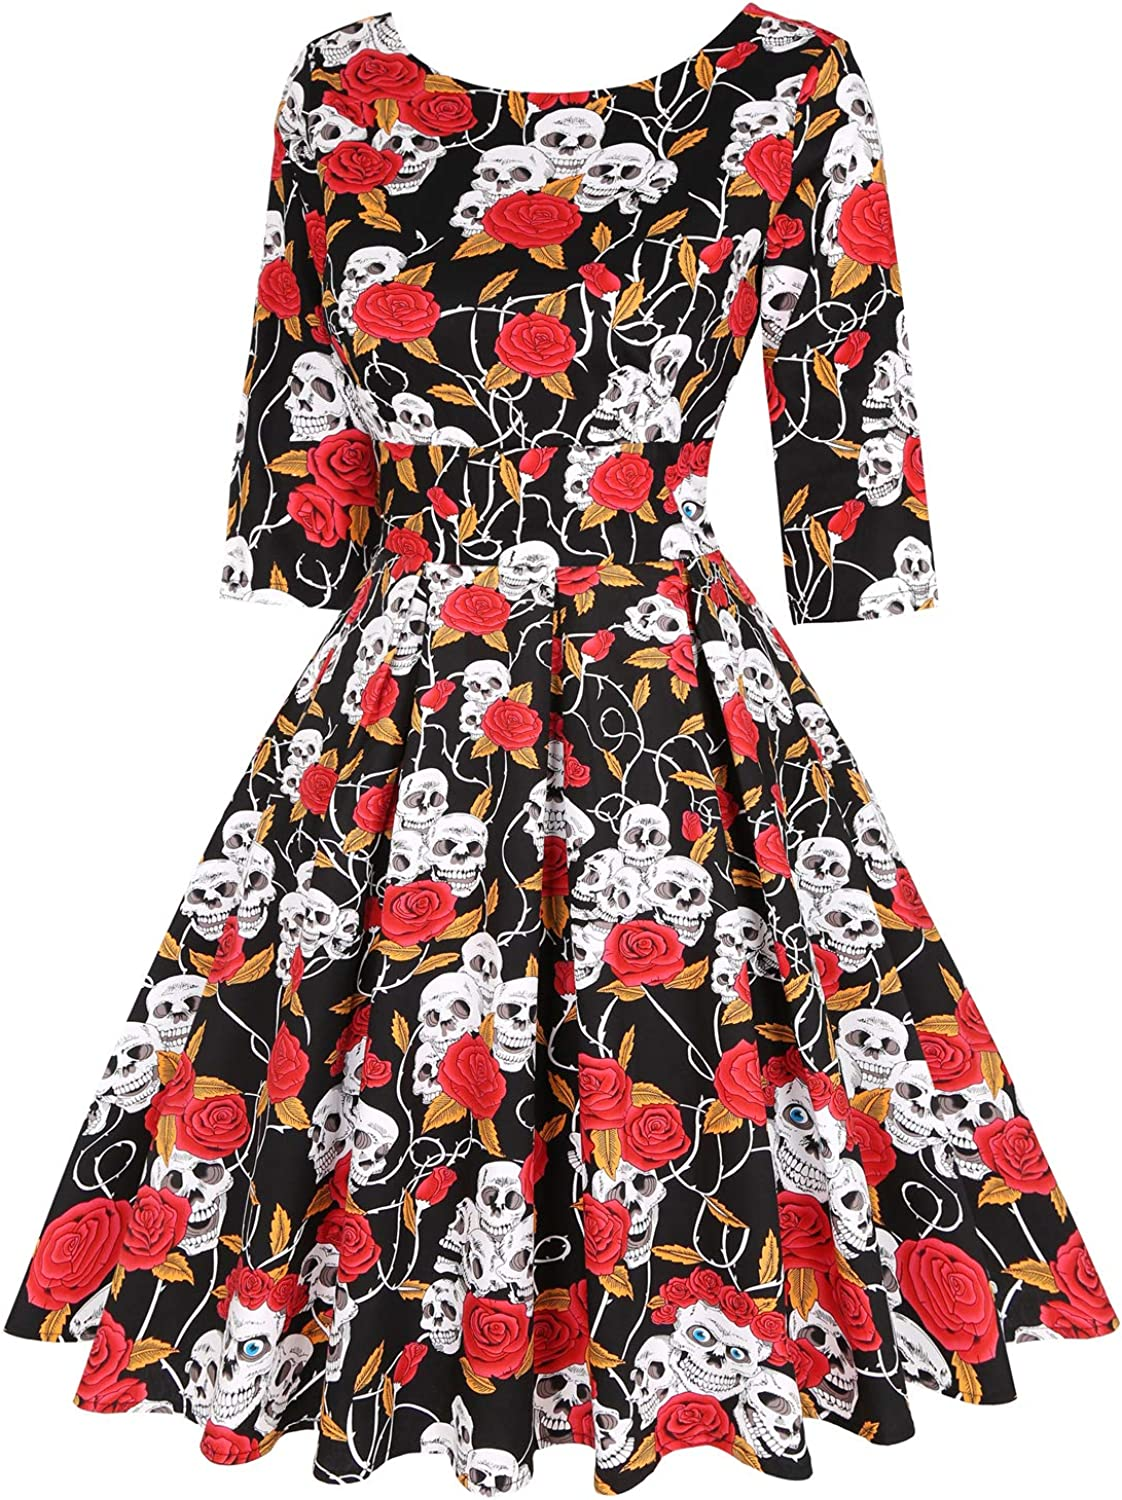 MINTLIMIT Womens 1950s Retro Vintage Cocktail Party 3//4 Sleeve Swing Dress